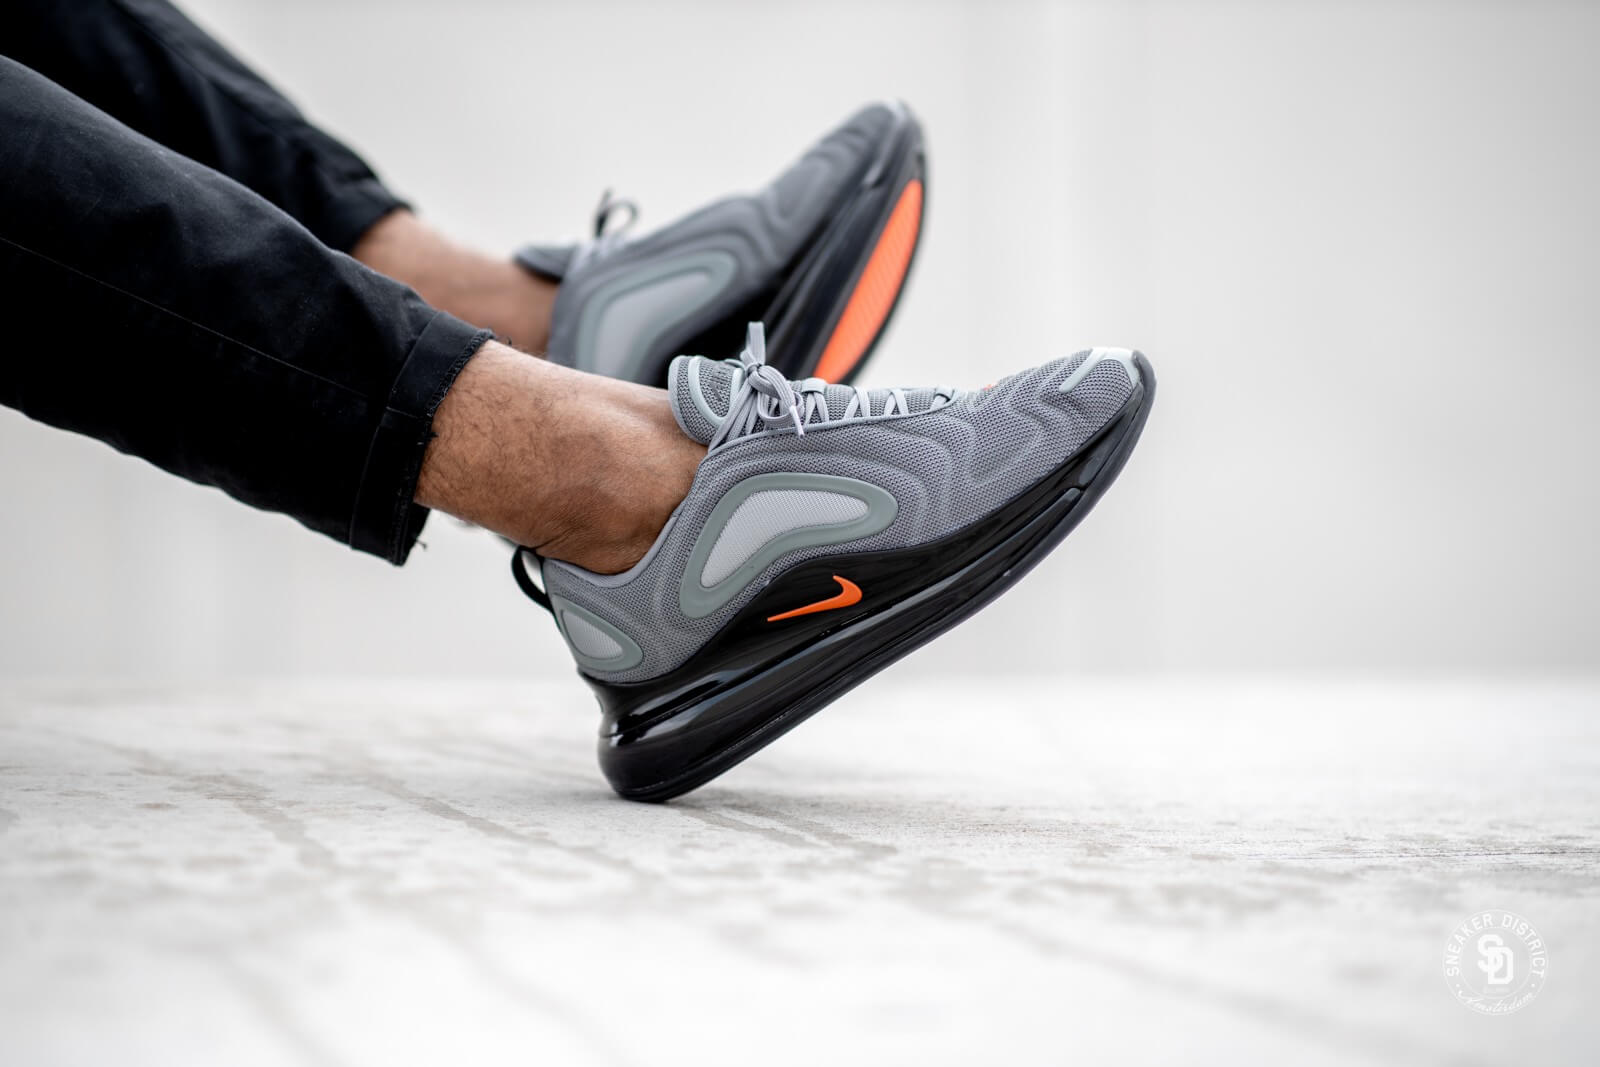 Nike Air Max 720 Cool GreyBright Crimson Black CK0897 001